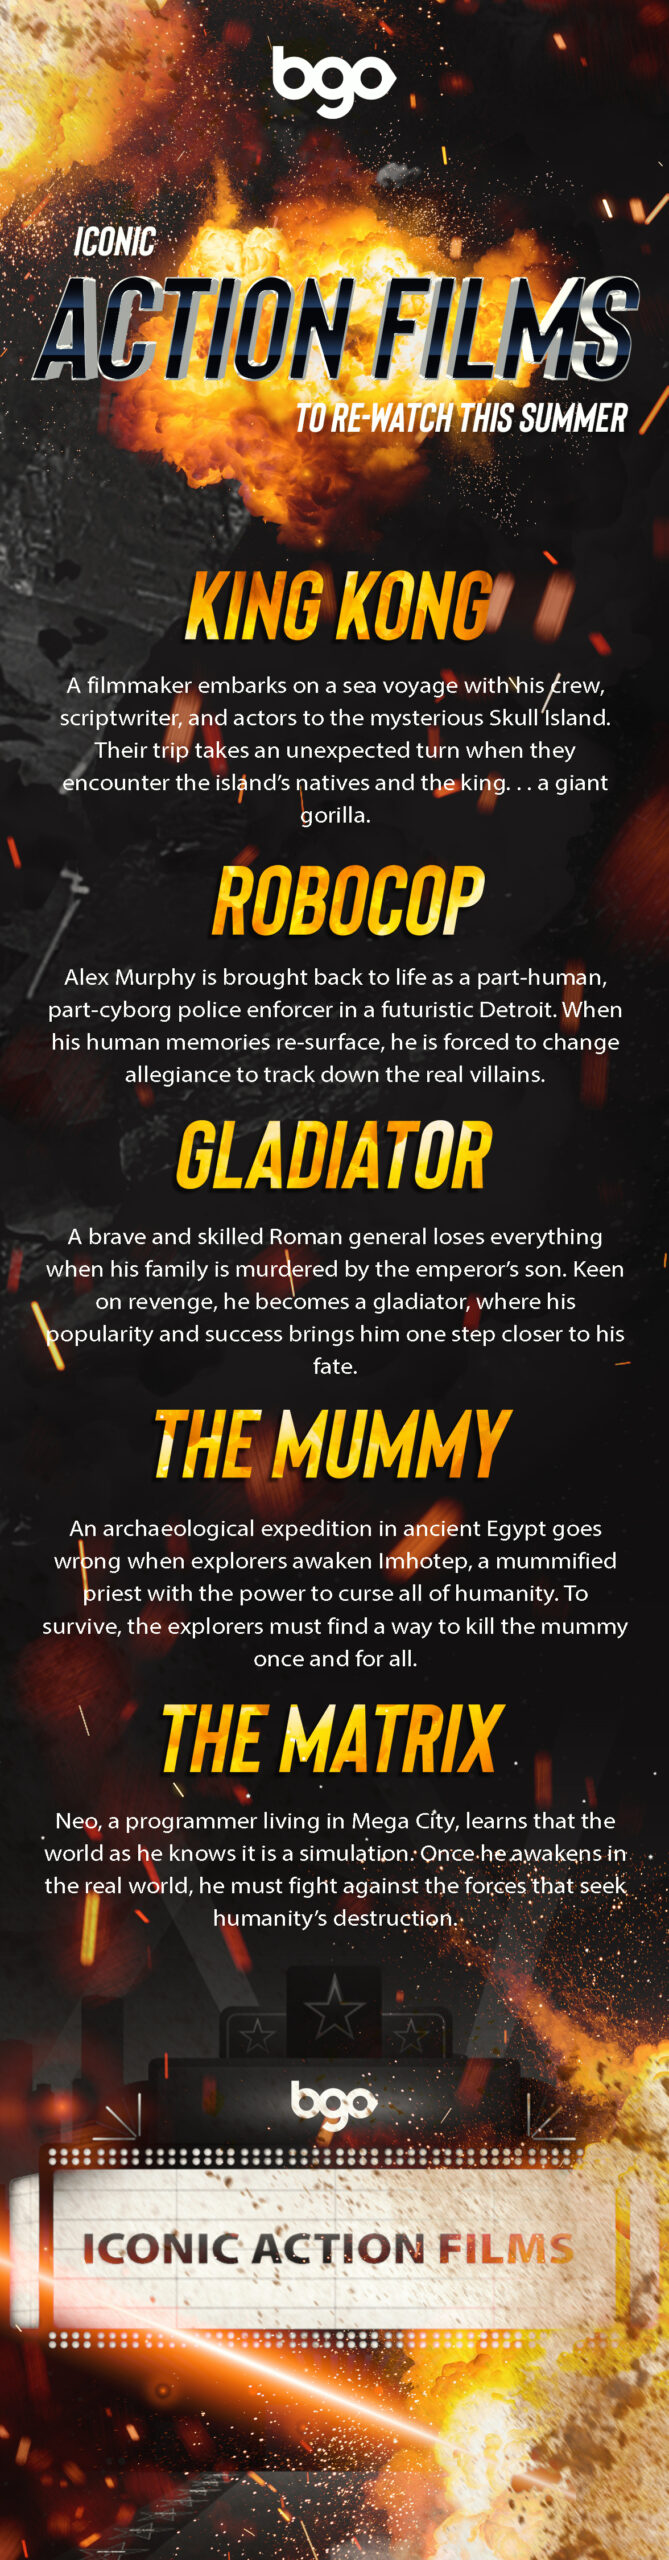 Iconic Action Films to Re-watch this Summer infographic